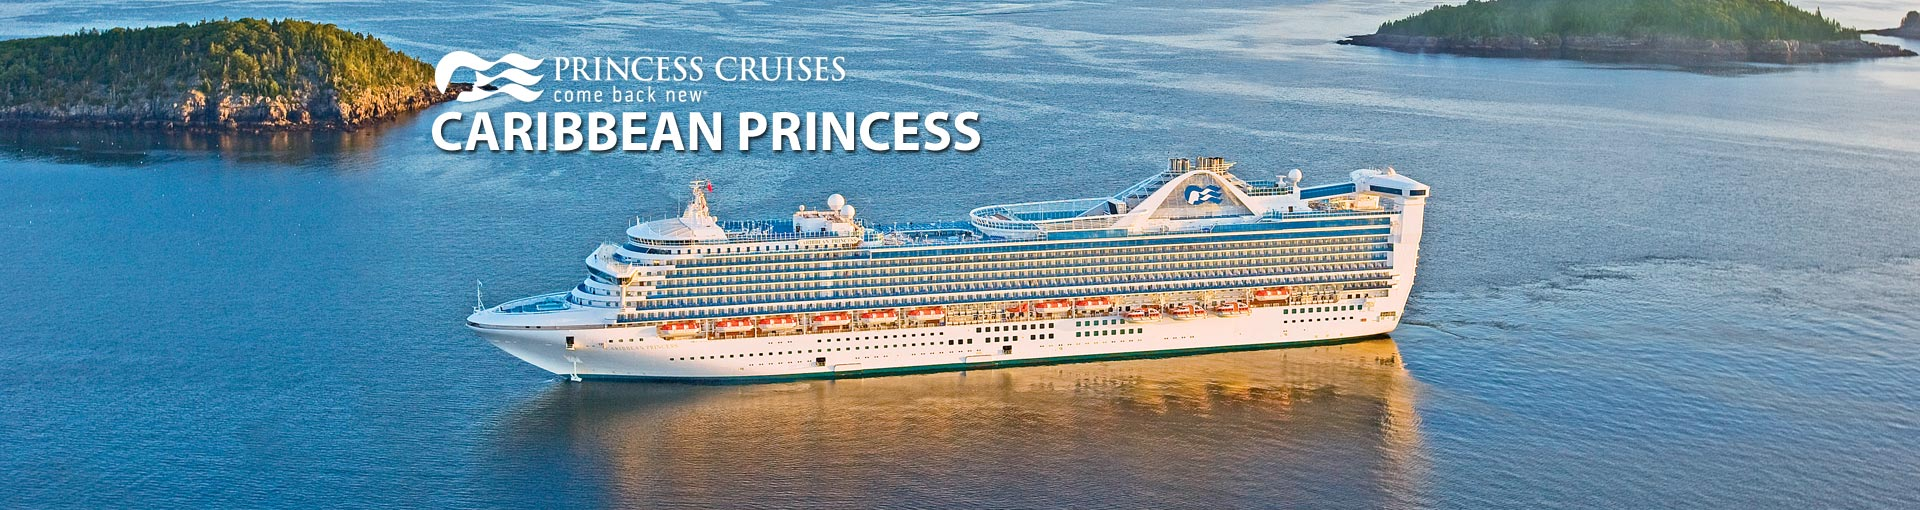 Princess Cruises Caribbean Princess cruise ship Caribbean